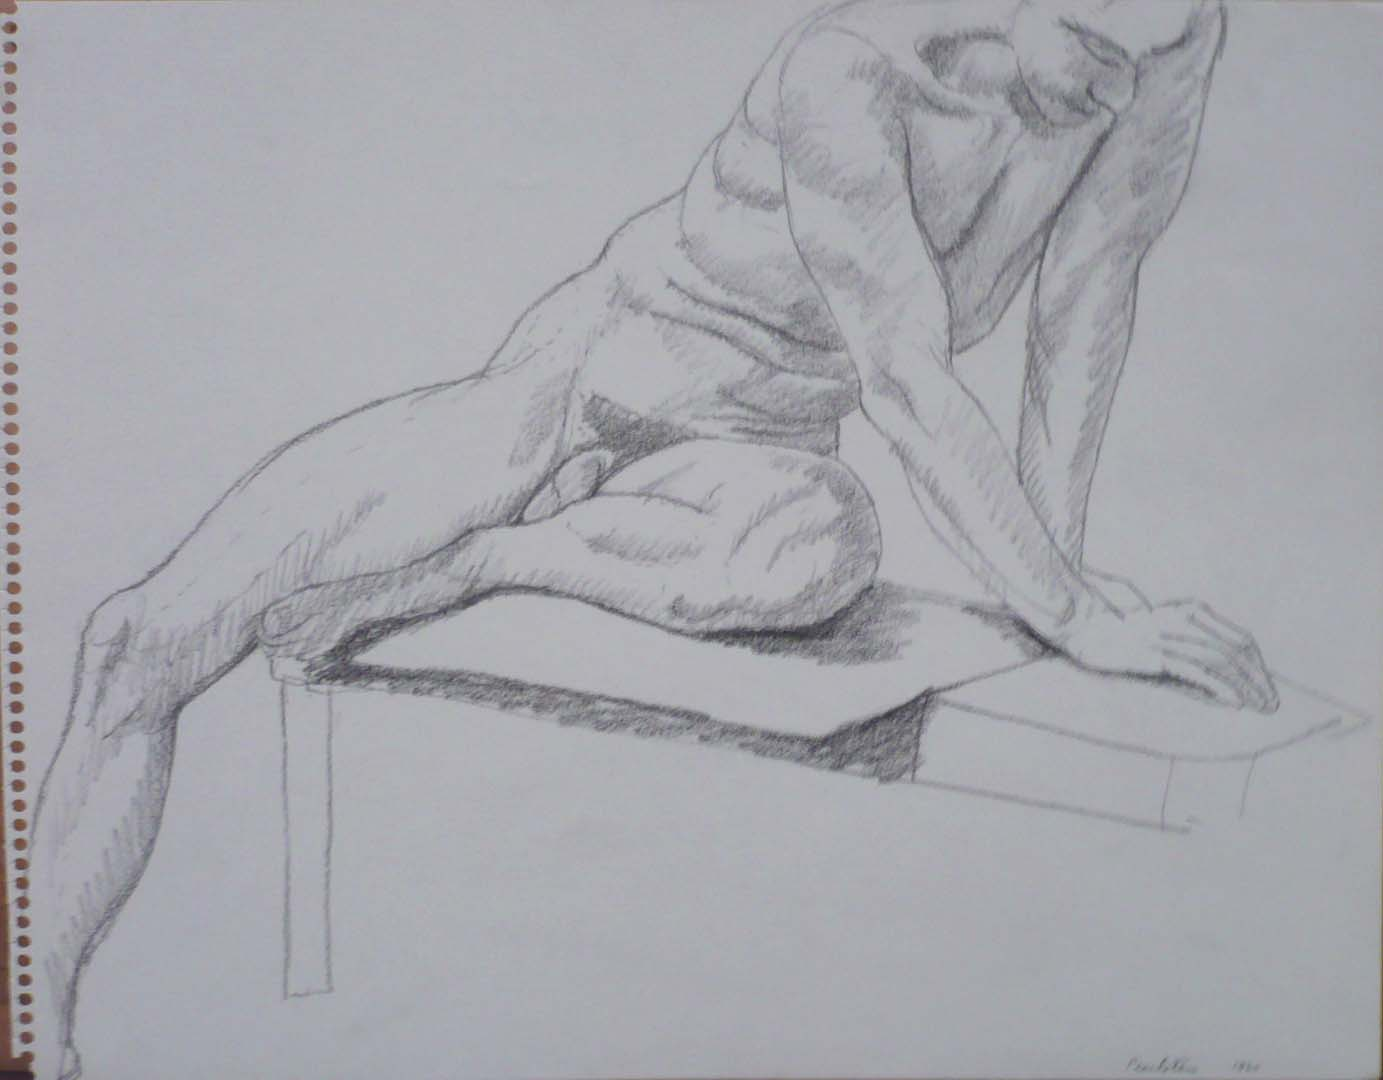 1964 Male Model Seated on Platform Pencil 11 x 14